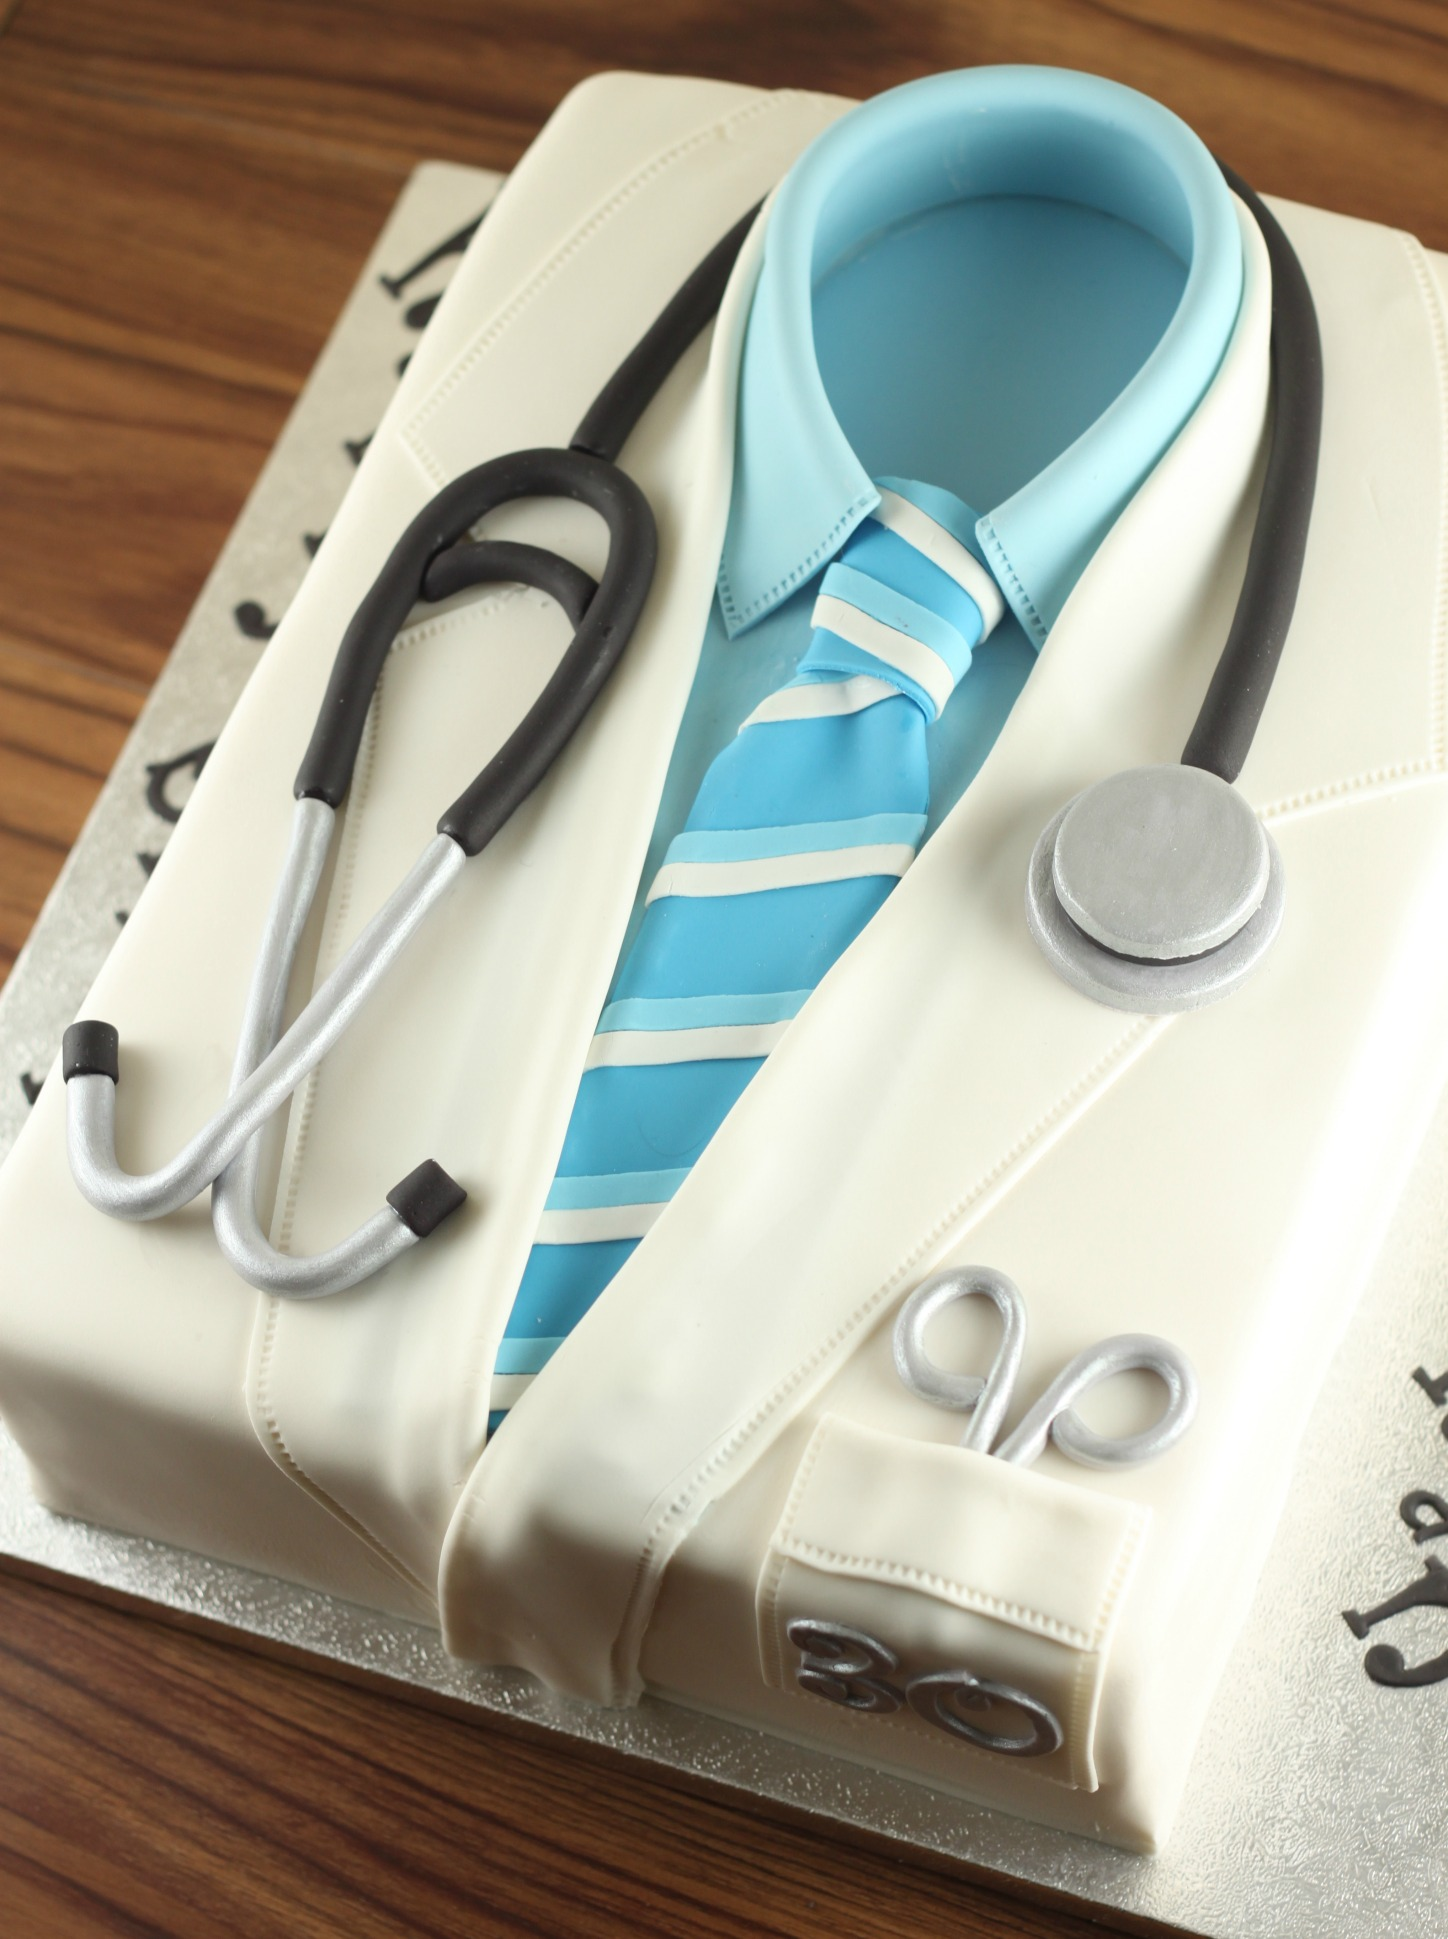 How To Make Doctors Cake